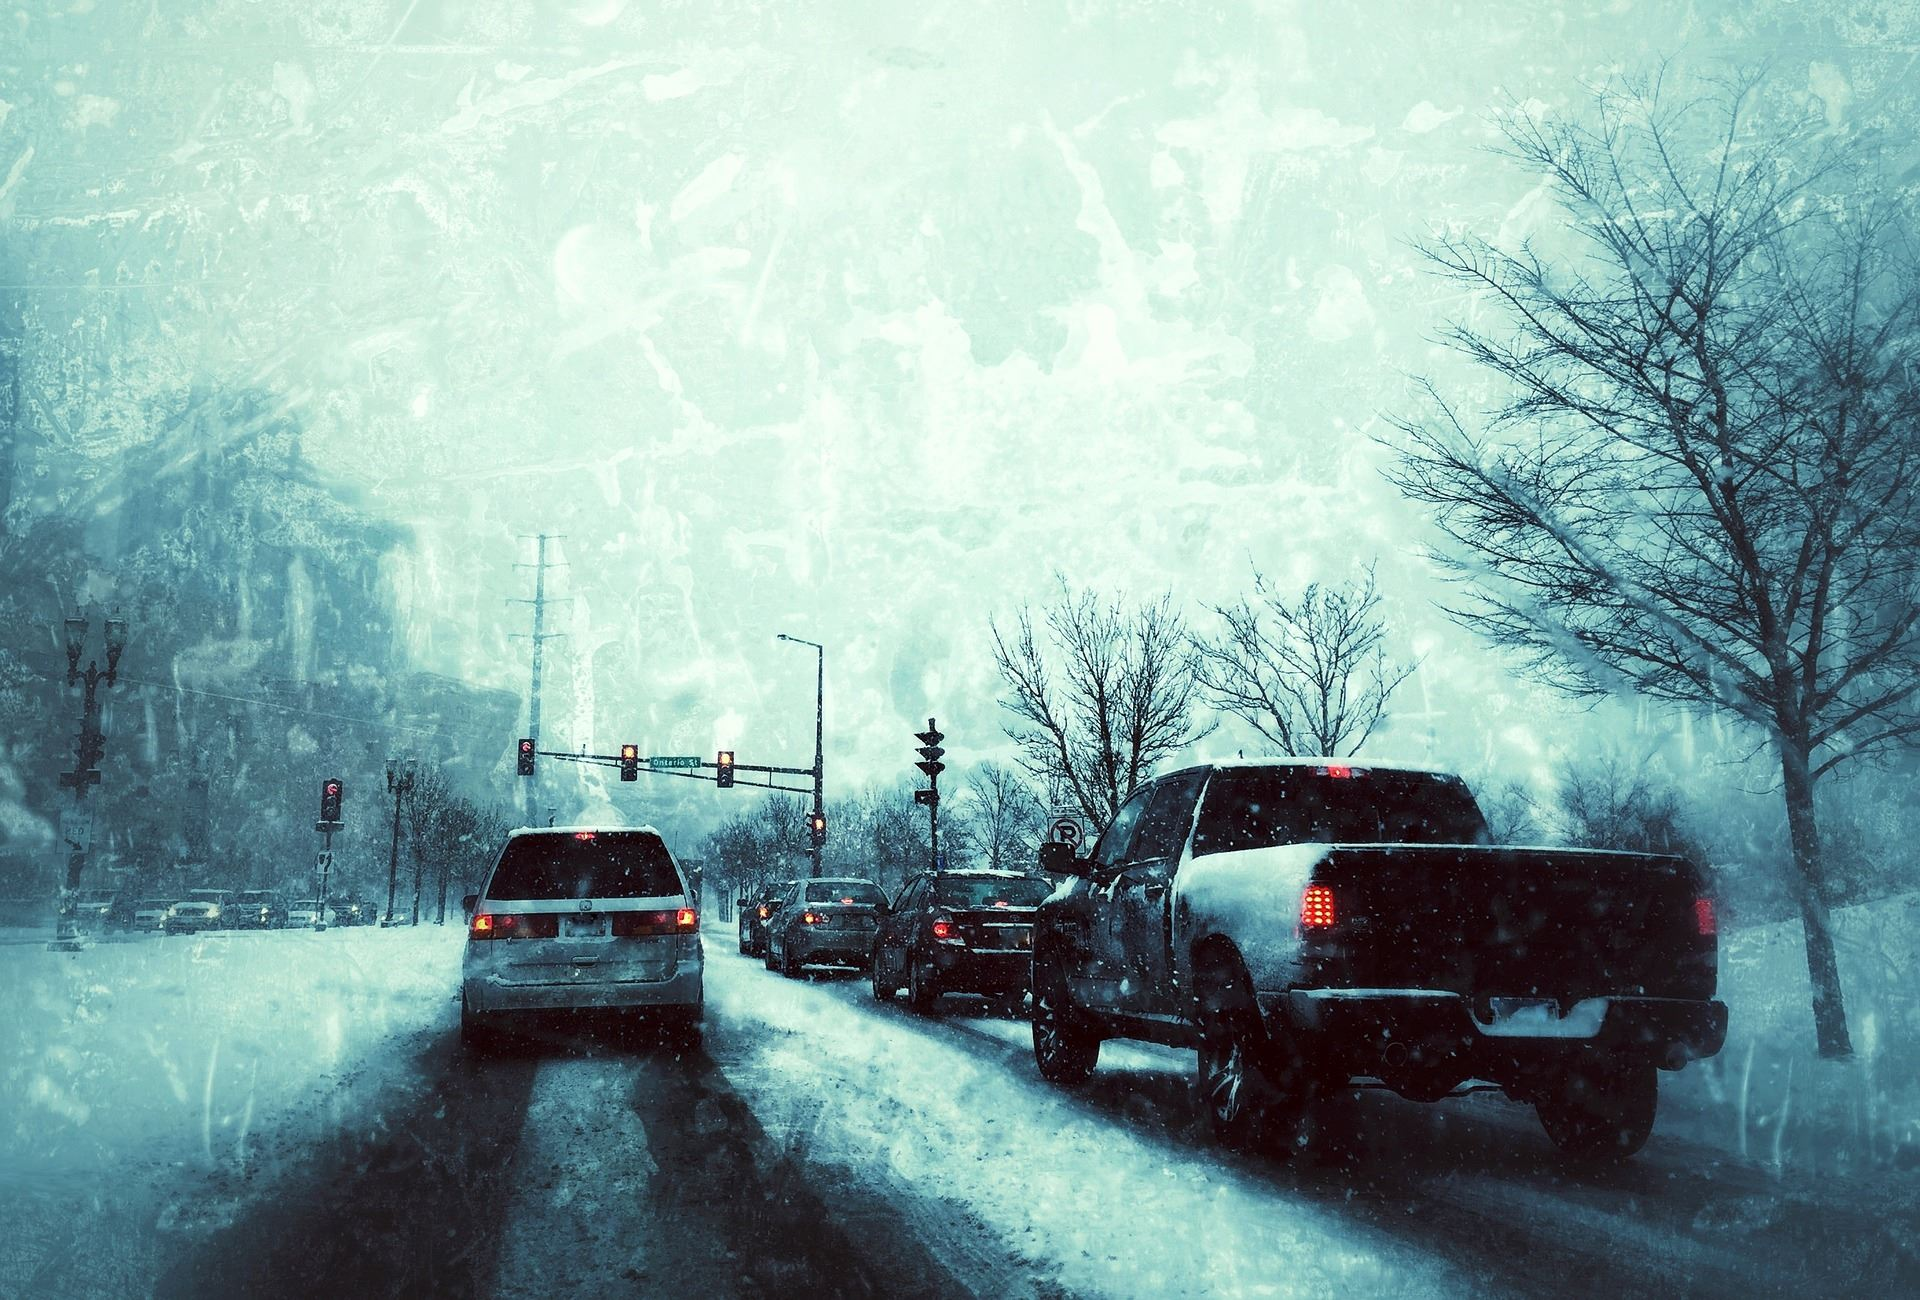 Picture of traffic at a stoplight during snowy conditions